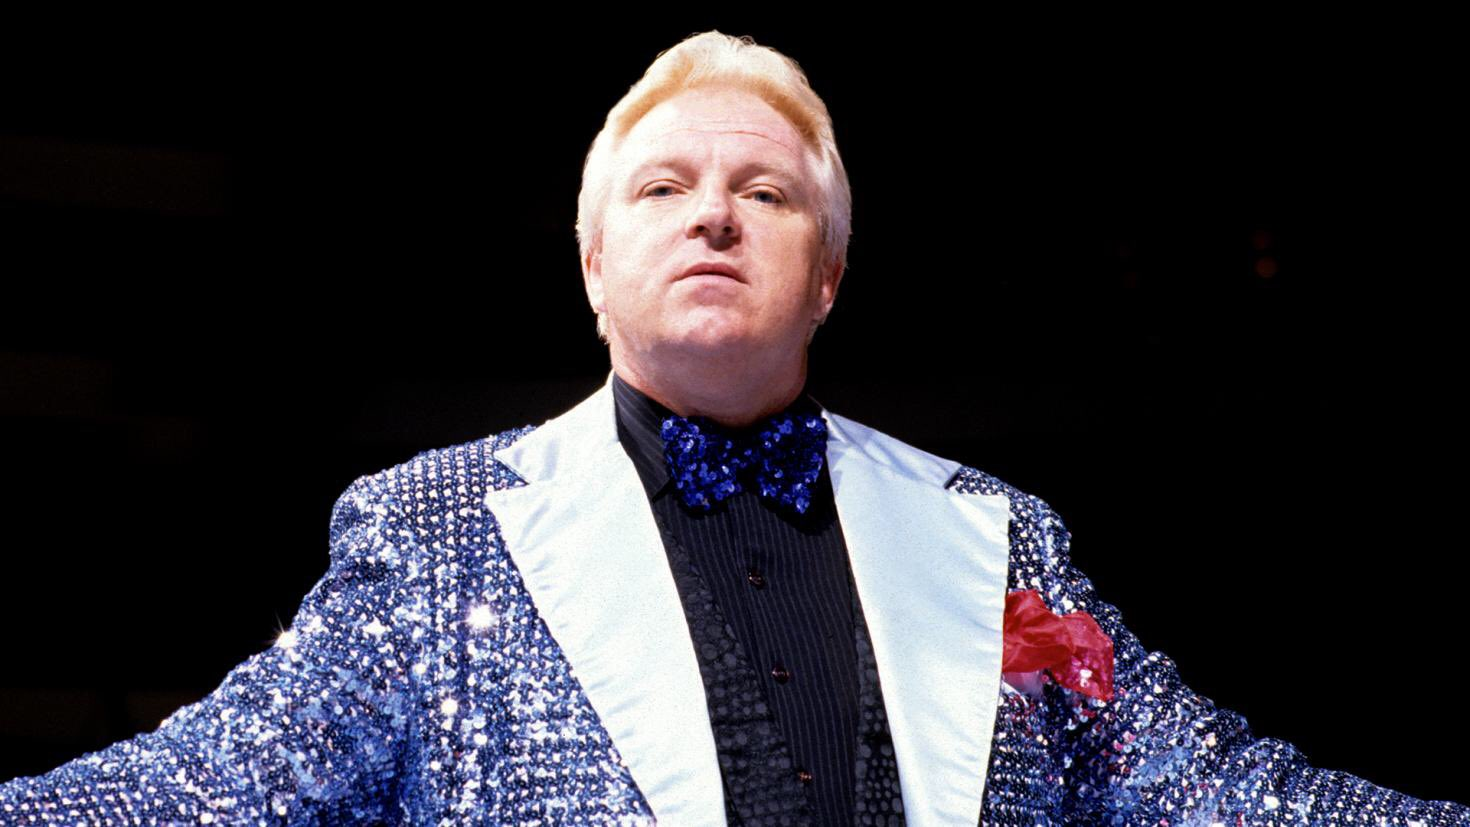 One of the greatest managers and announcers in WWE history. Our thoughts are with the Heenan family. https://t.co/r9A3IJlSoP